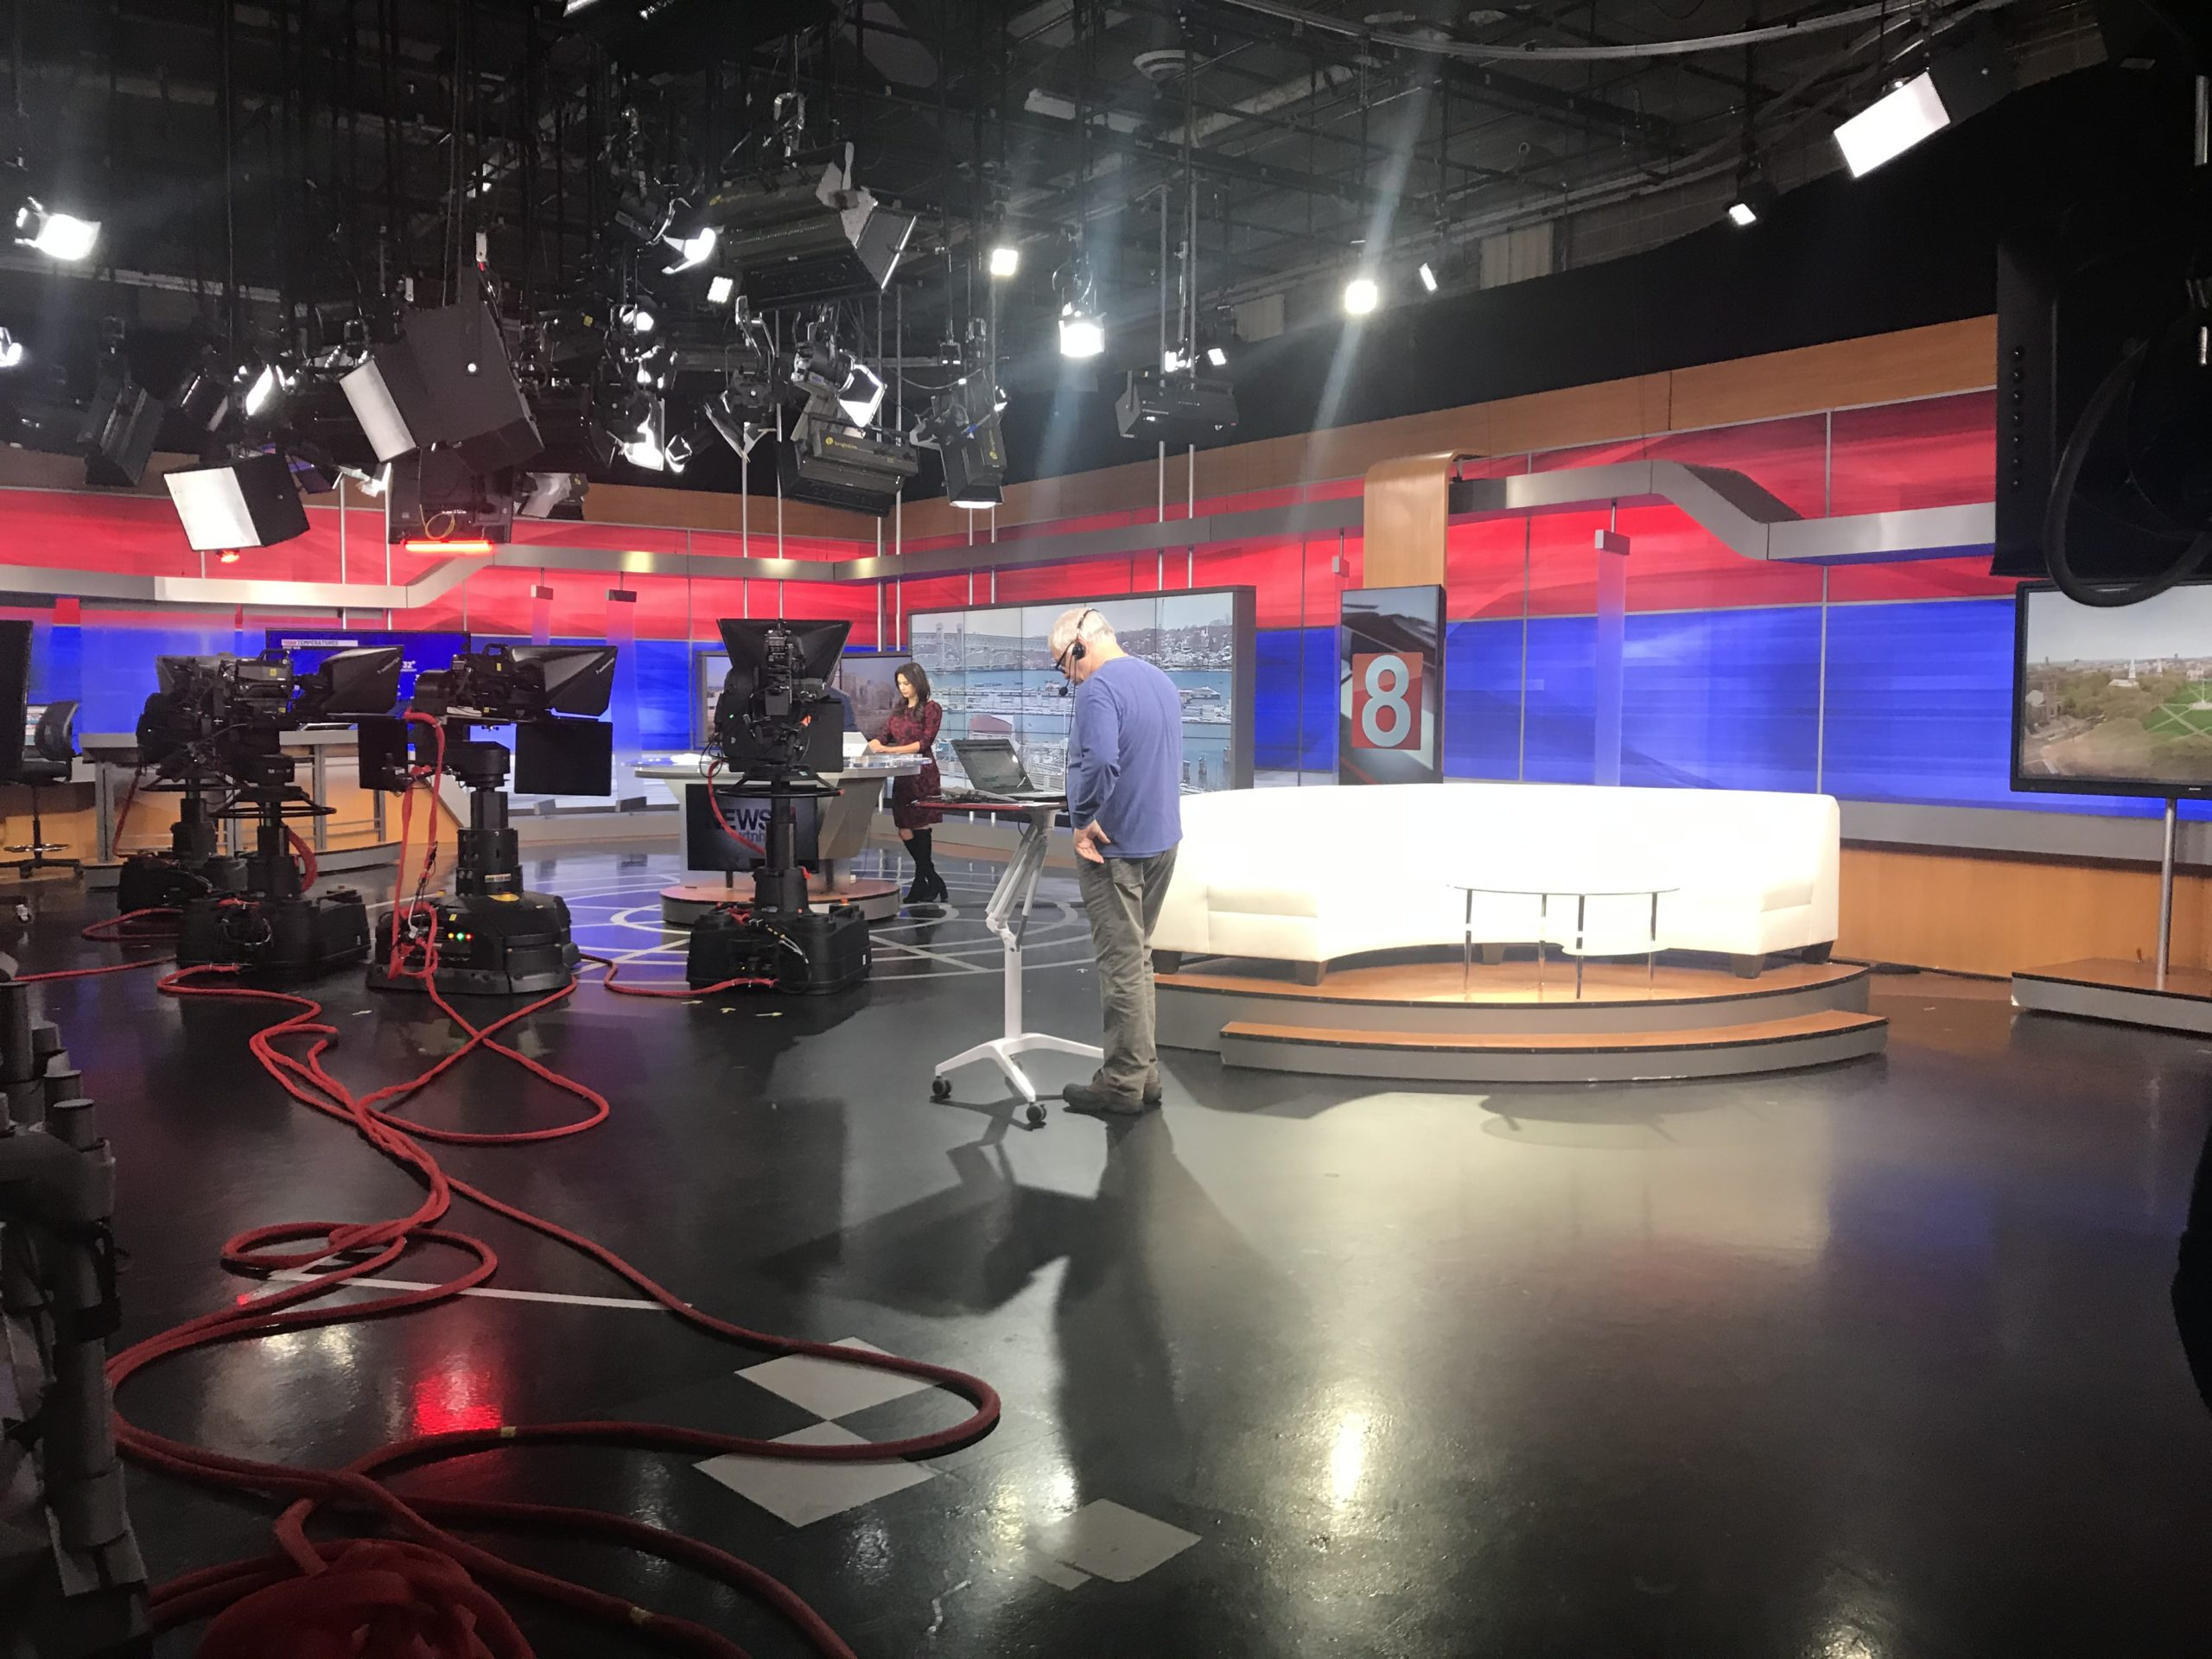 Warde Students Take Trip to News 8